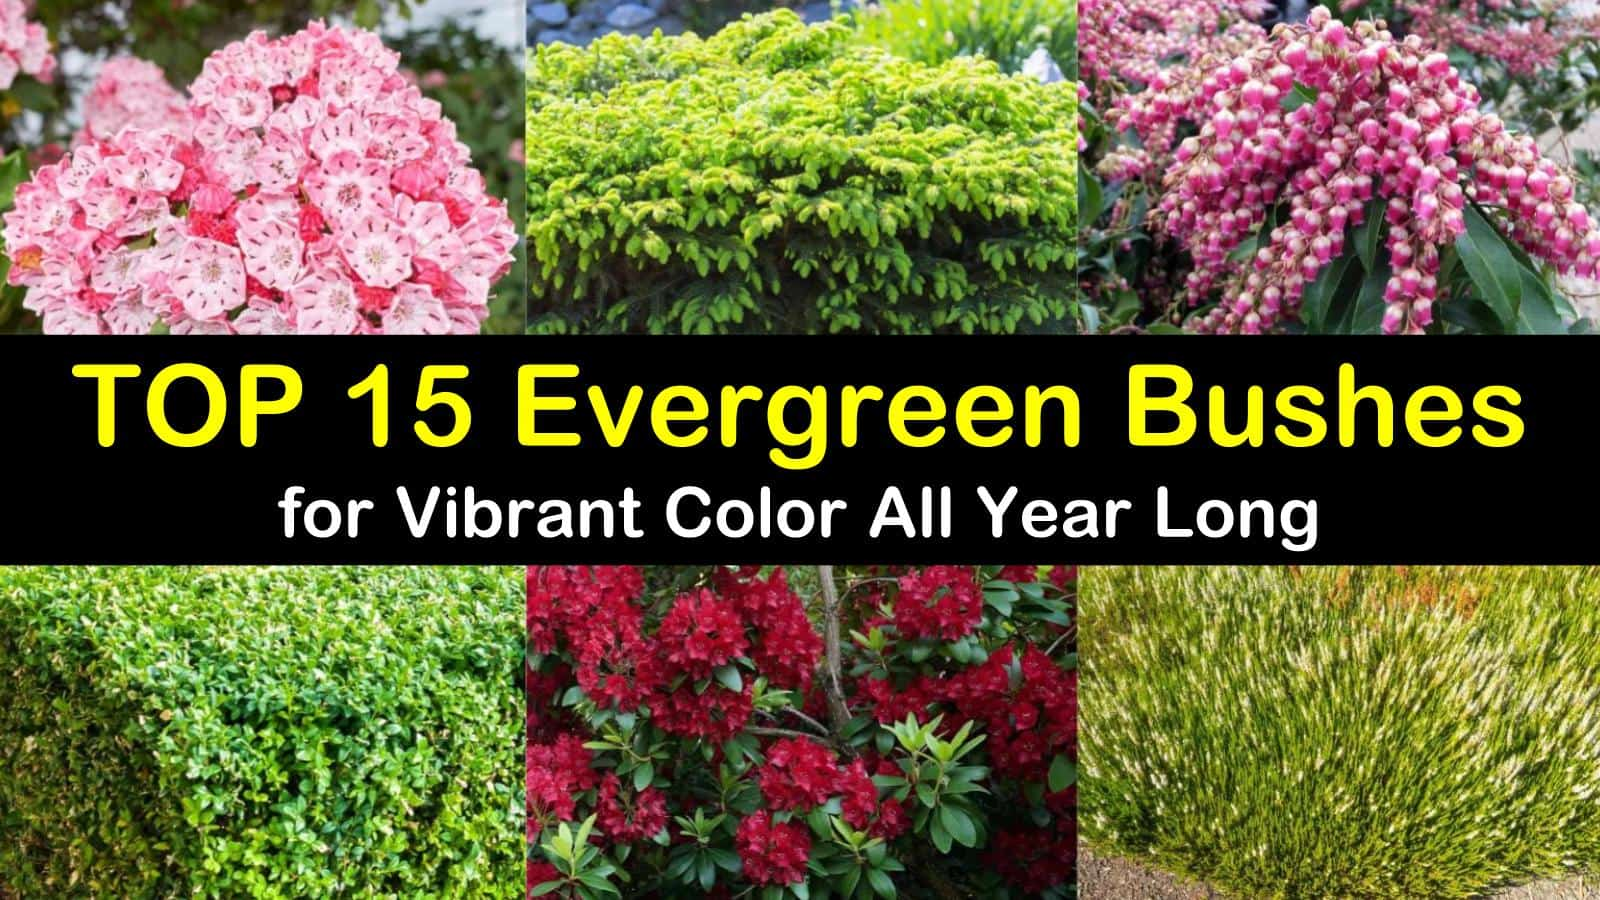 Top 15 Evergreen Bushes For Vibrant